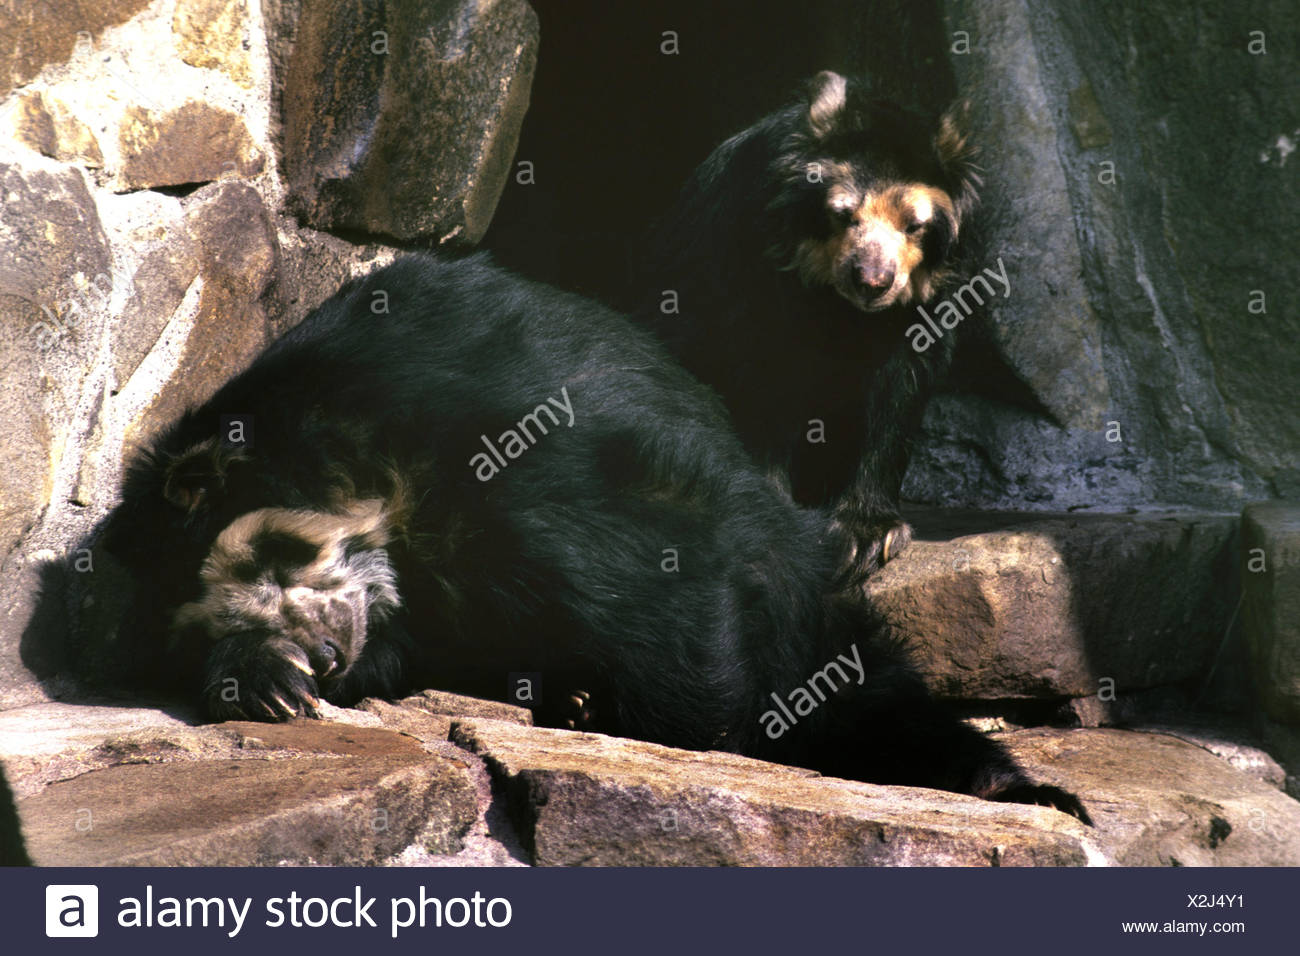 Spectacled bear, Andean bear (Tremarctos ornatus), two Andean bears on a rock Stock Photo